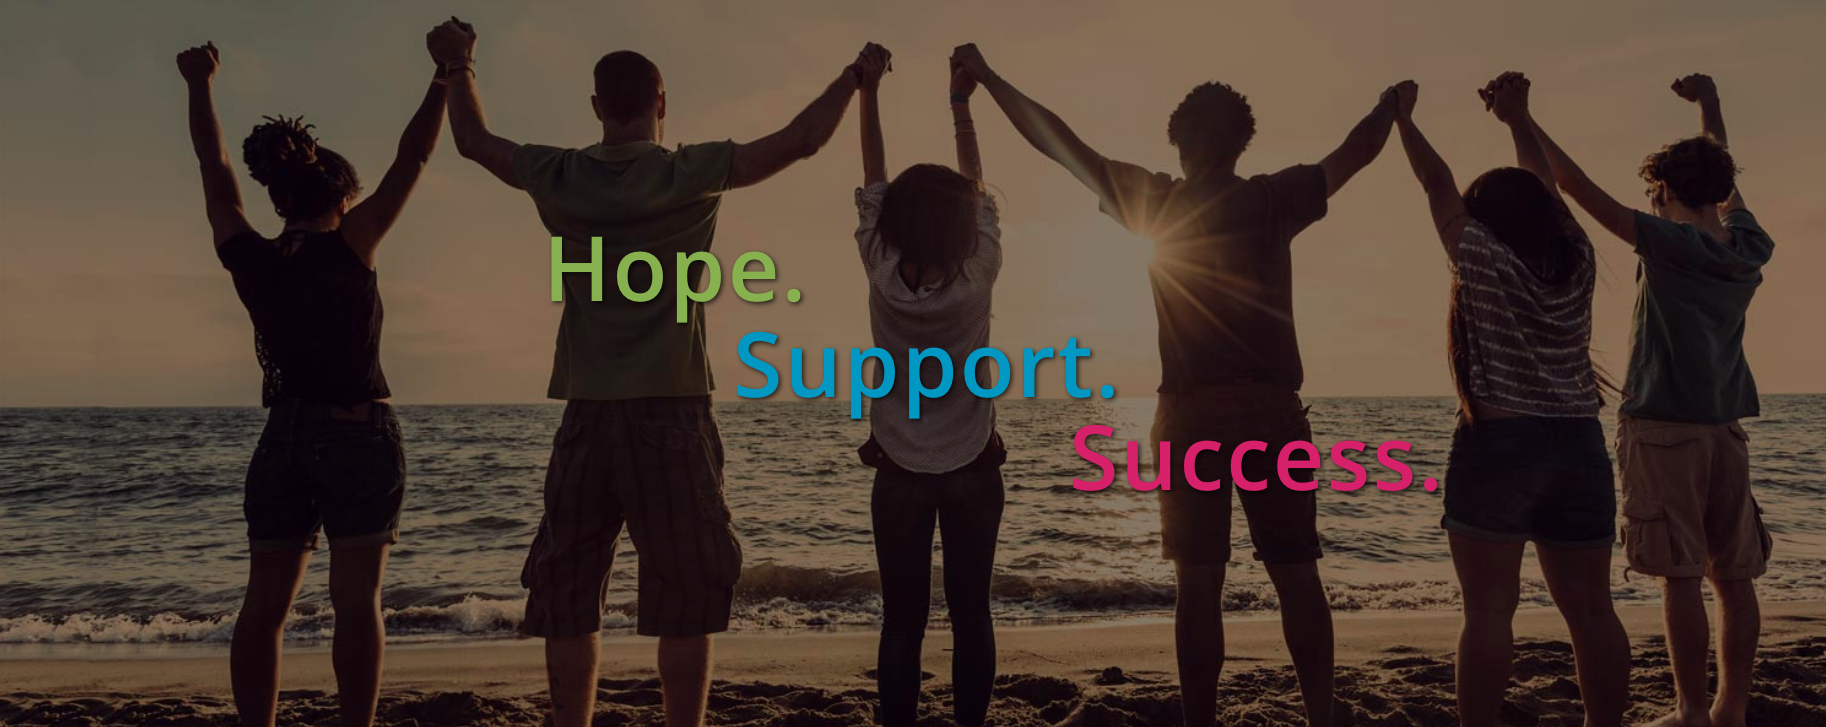 Hope. Support. Success.